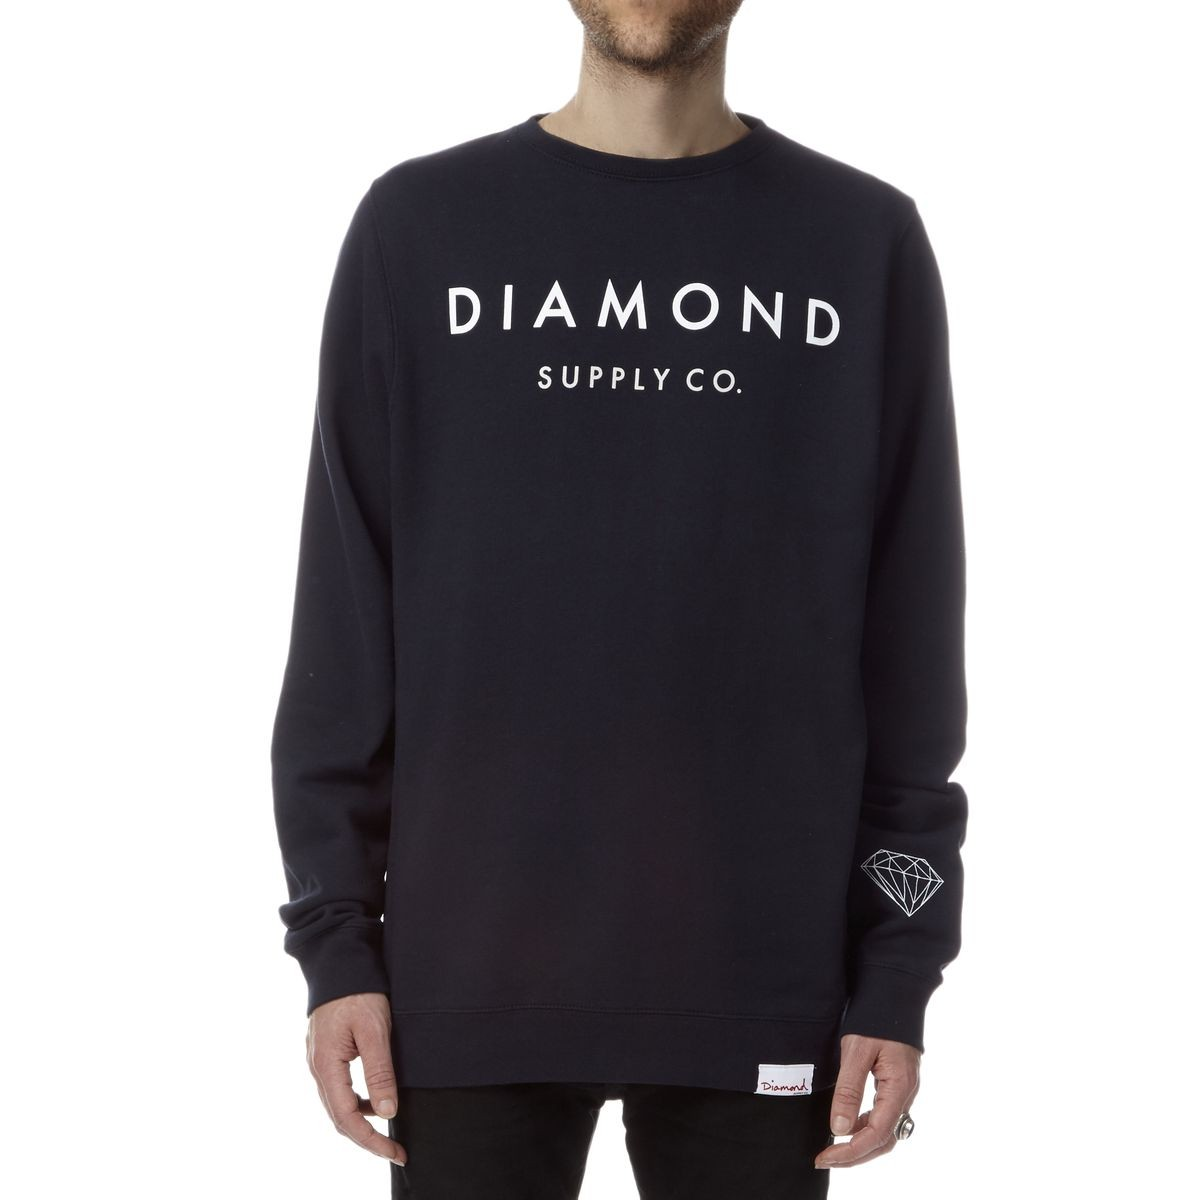 Diamond Supply Co. Yacht Type Crewneck Sweatshirt - Navy